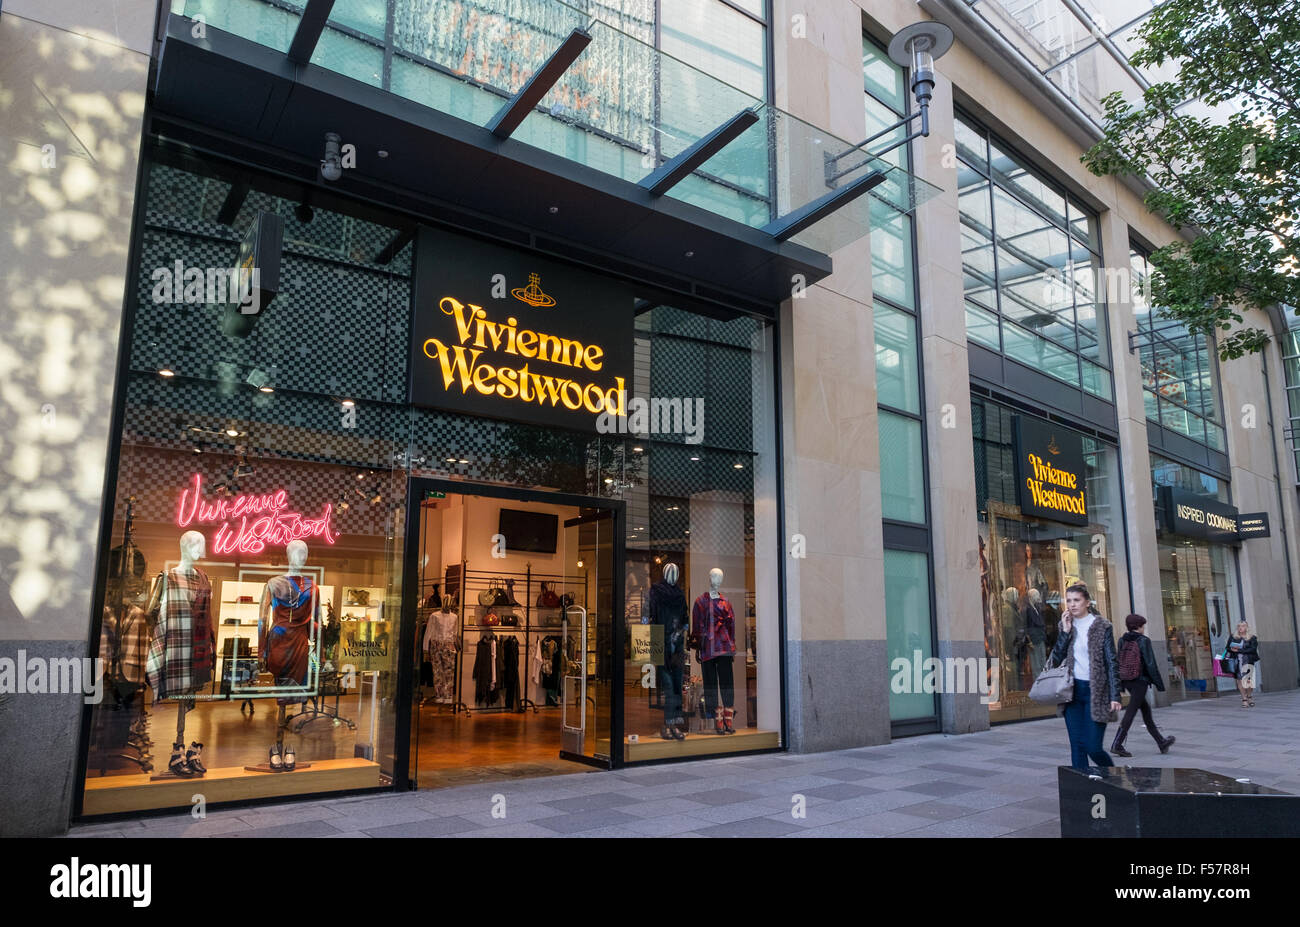 Exterior of the Vivienne Westwood shop, St Davids Centre, Cardiff, South Wales - Stock Image